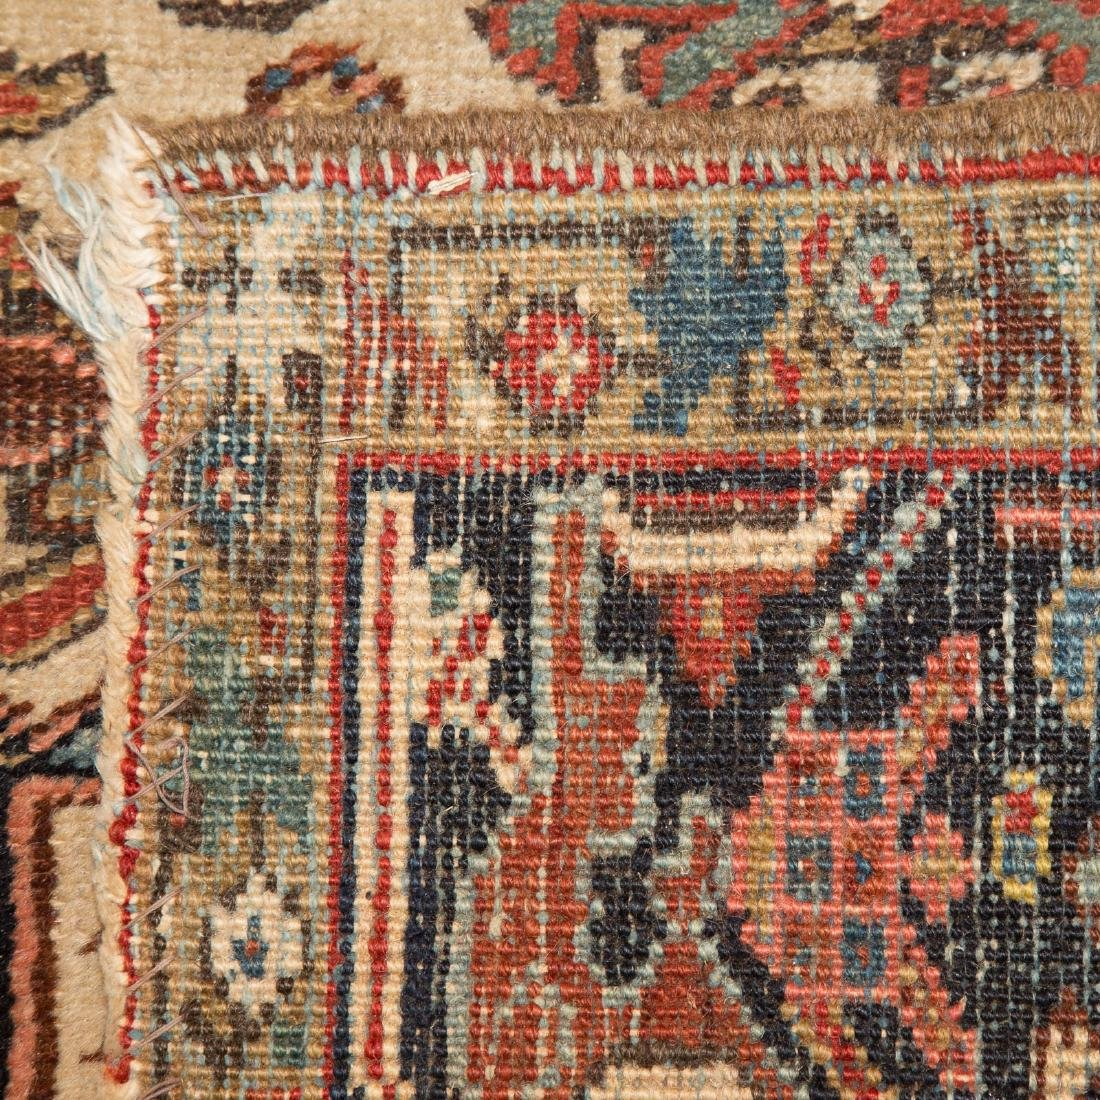 Persian Herez carpet, approx. 8.6 x 12.3 - 3